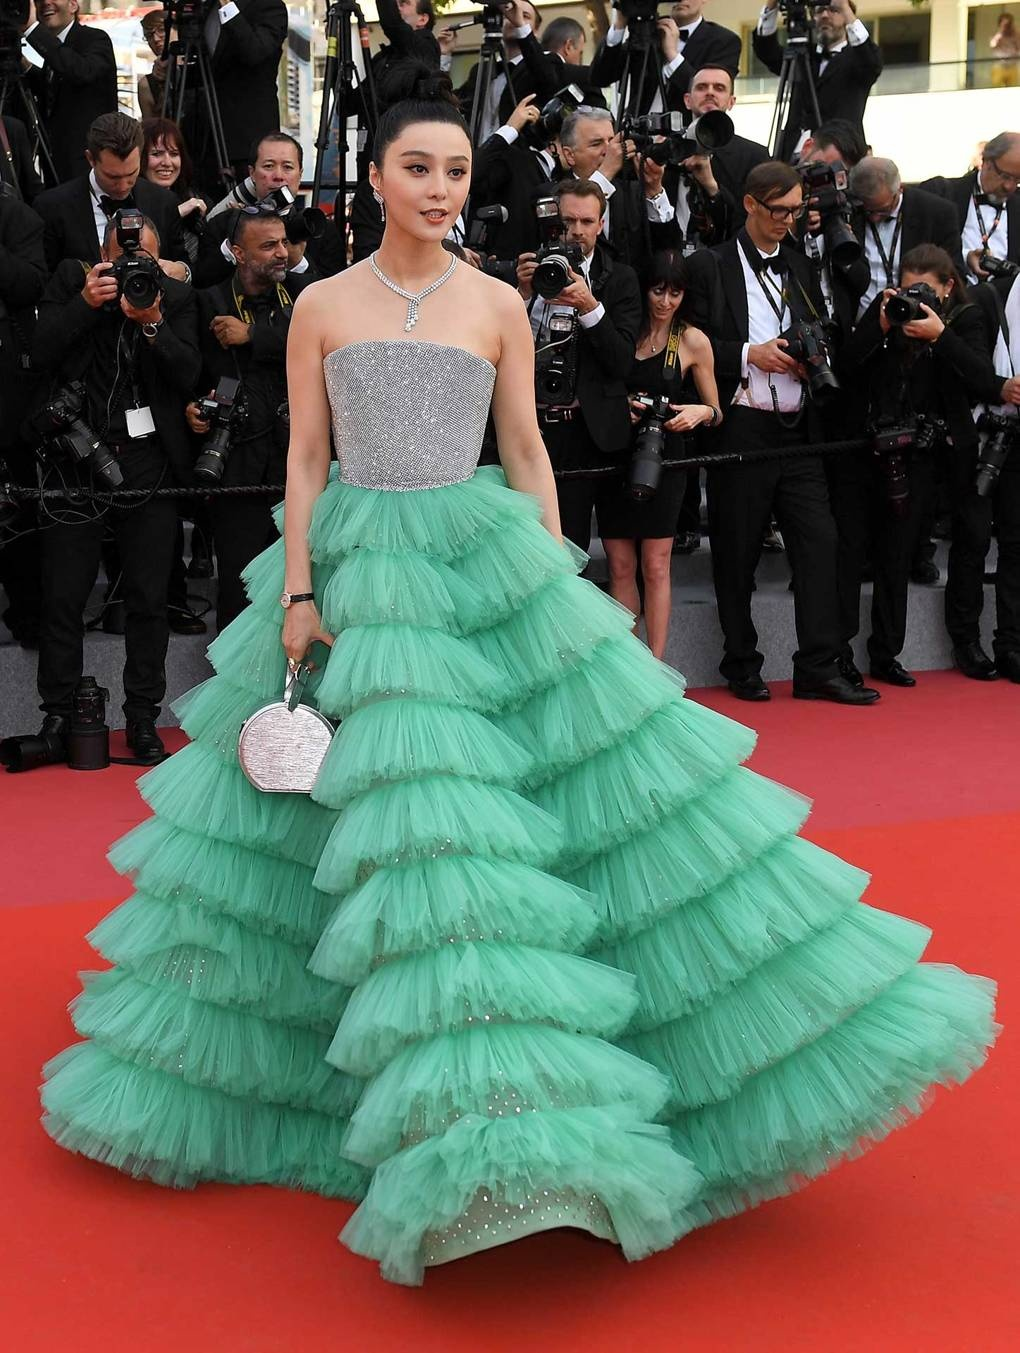 Tham do Cannes 2018 anh 5